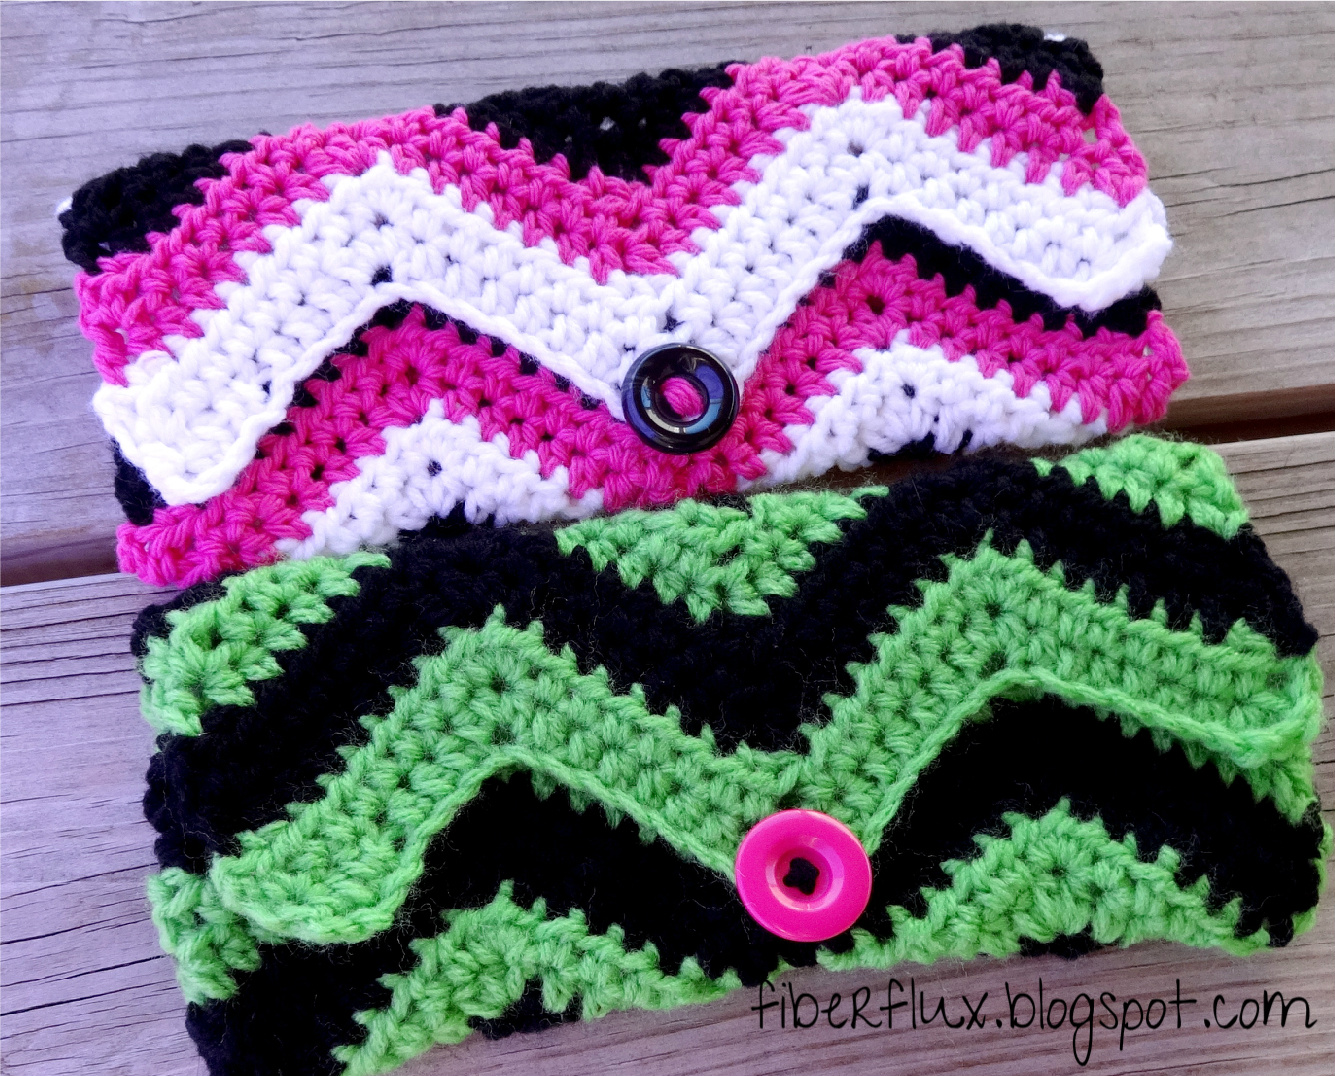 Crochet Clutch Lace Pattern : Fiber Flux: Free Crochet Pattern...Graphic Chevron Clutch!